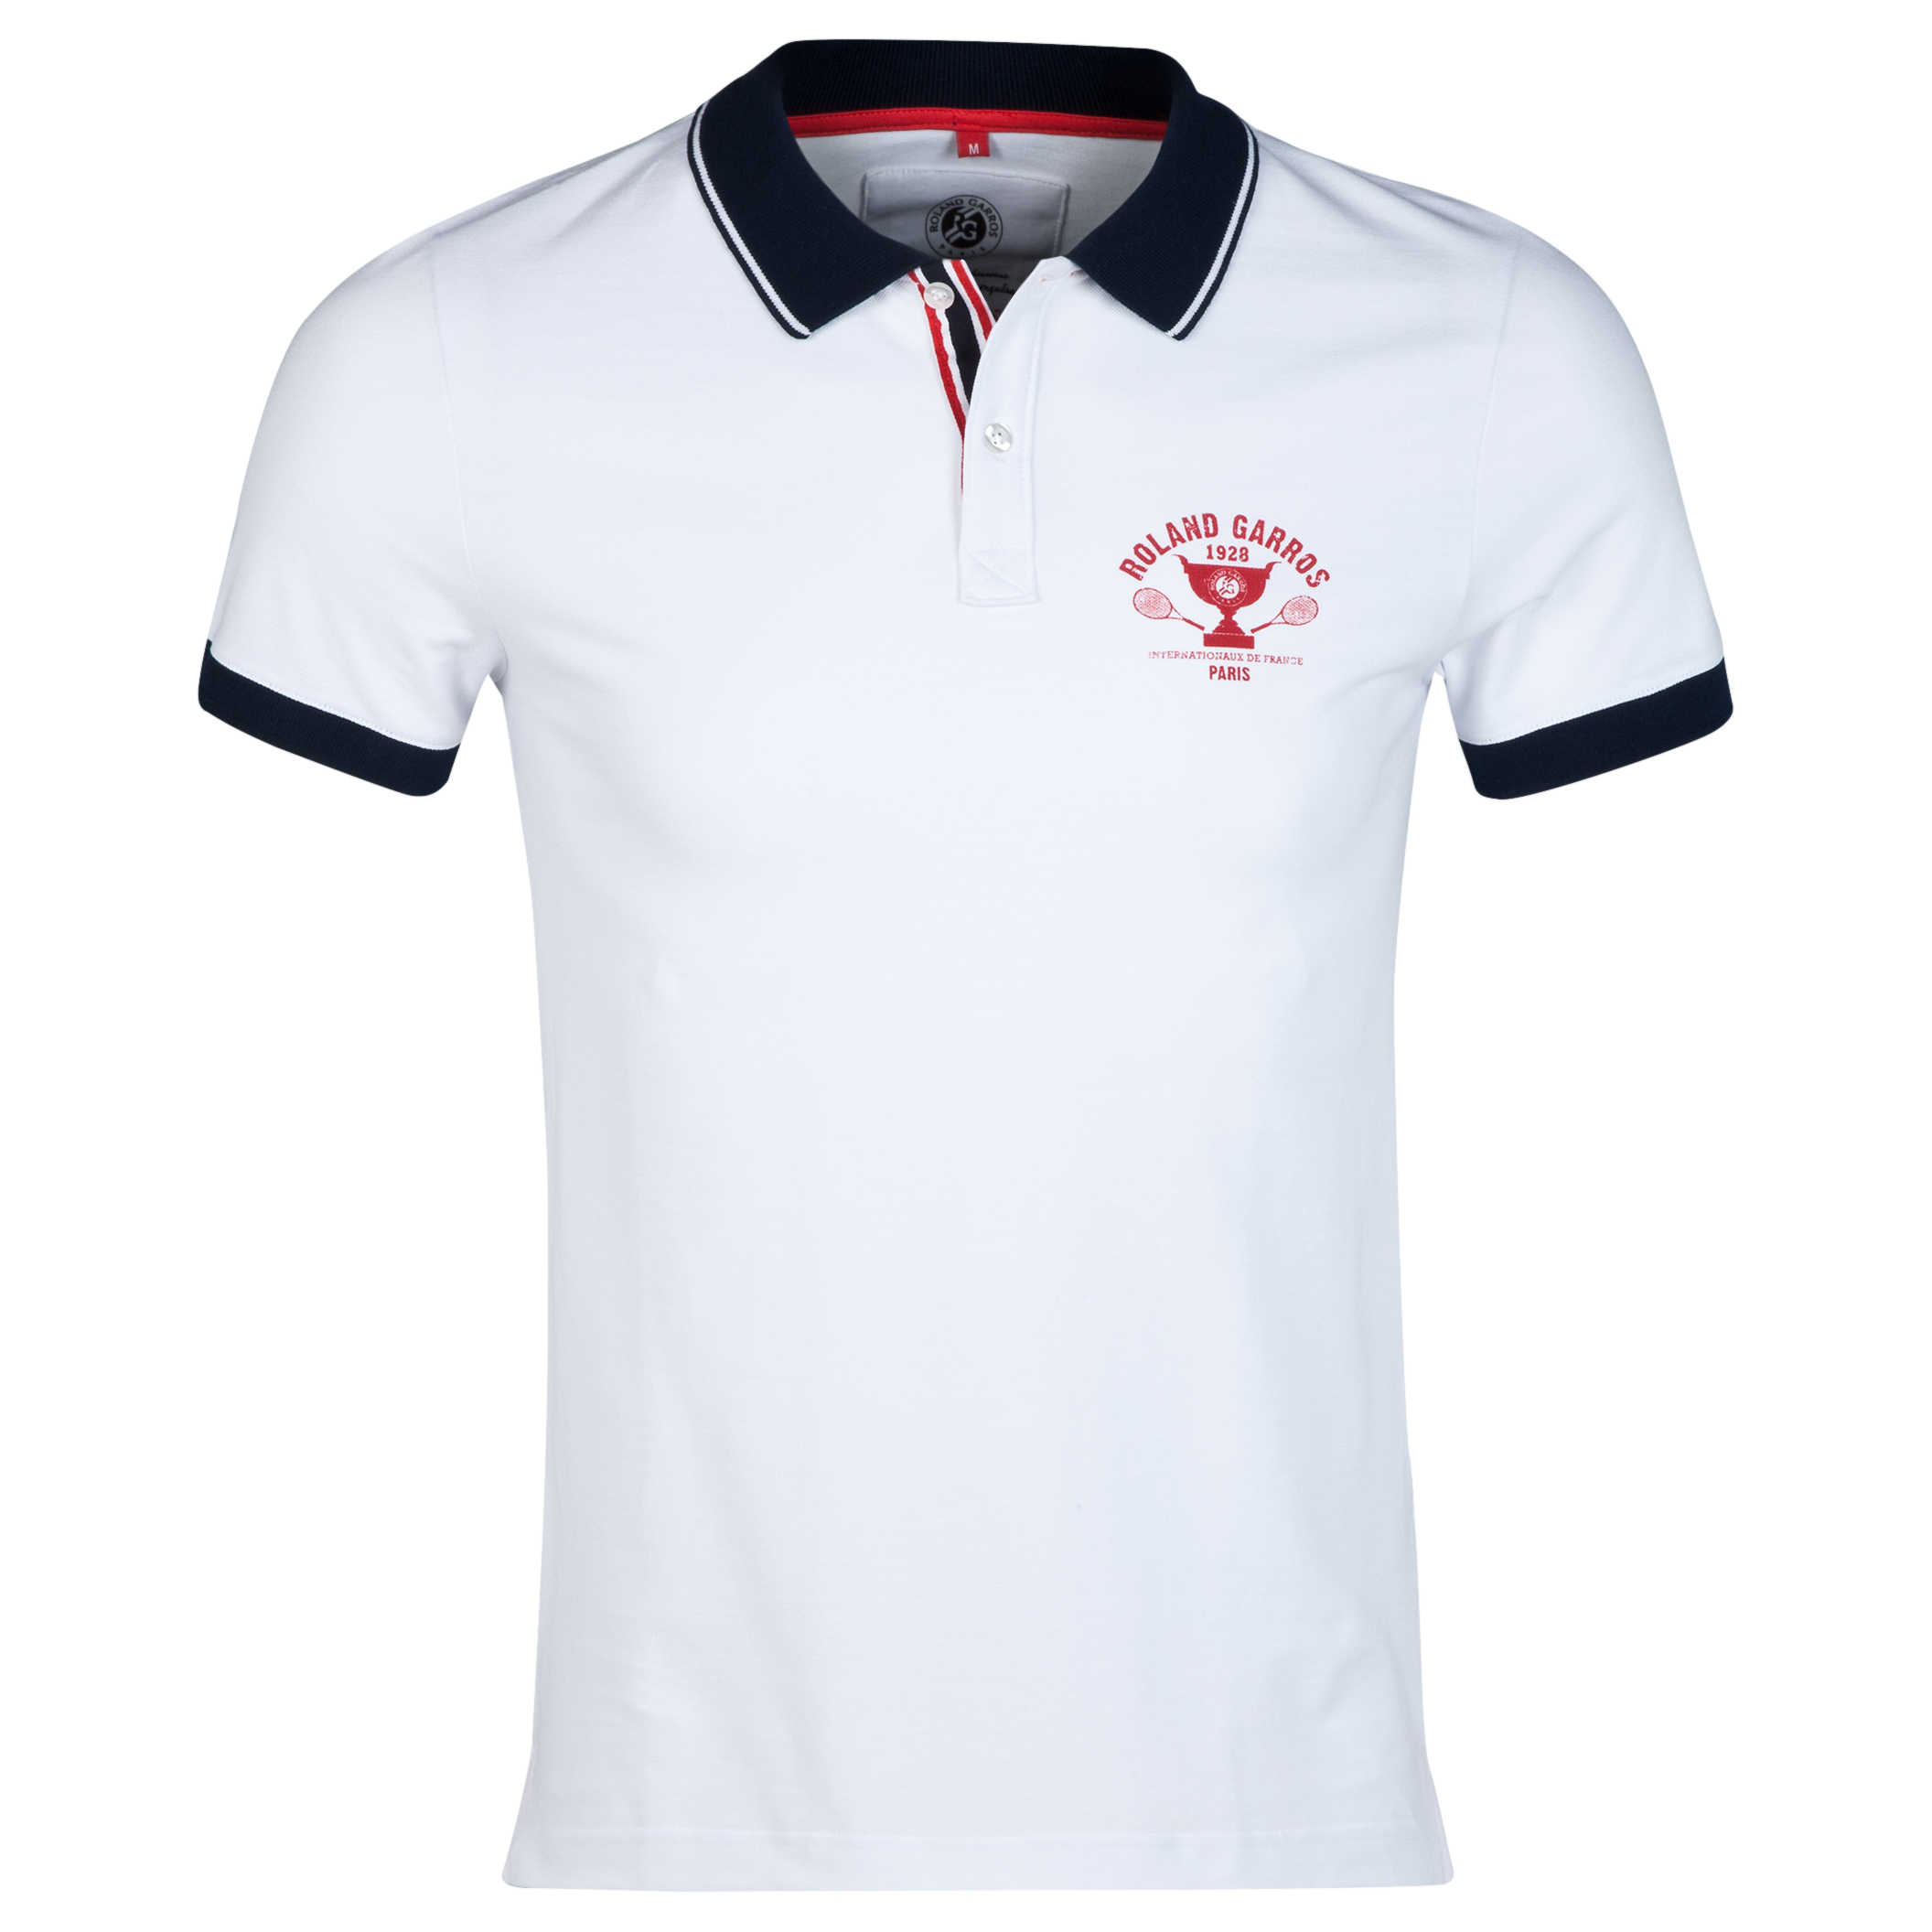 Roland-Garros Analandia Retro Polo White